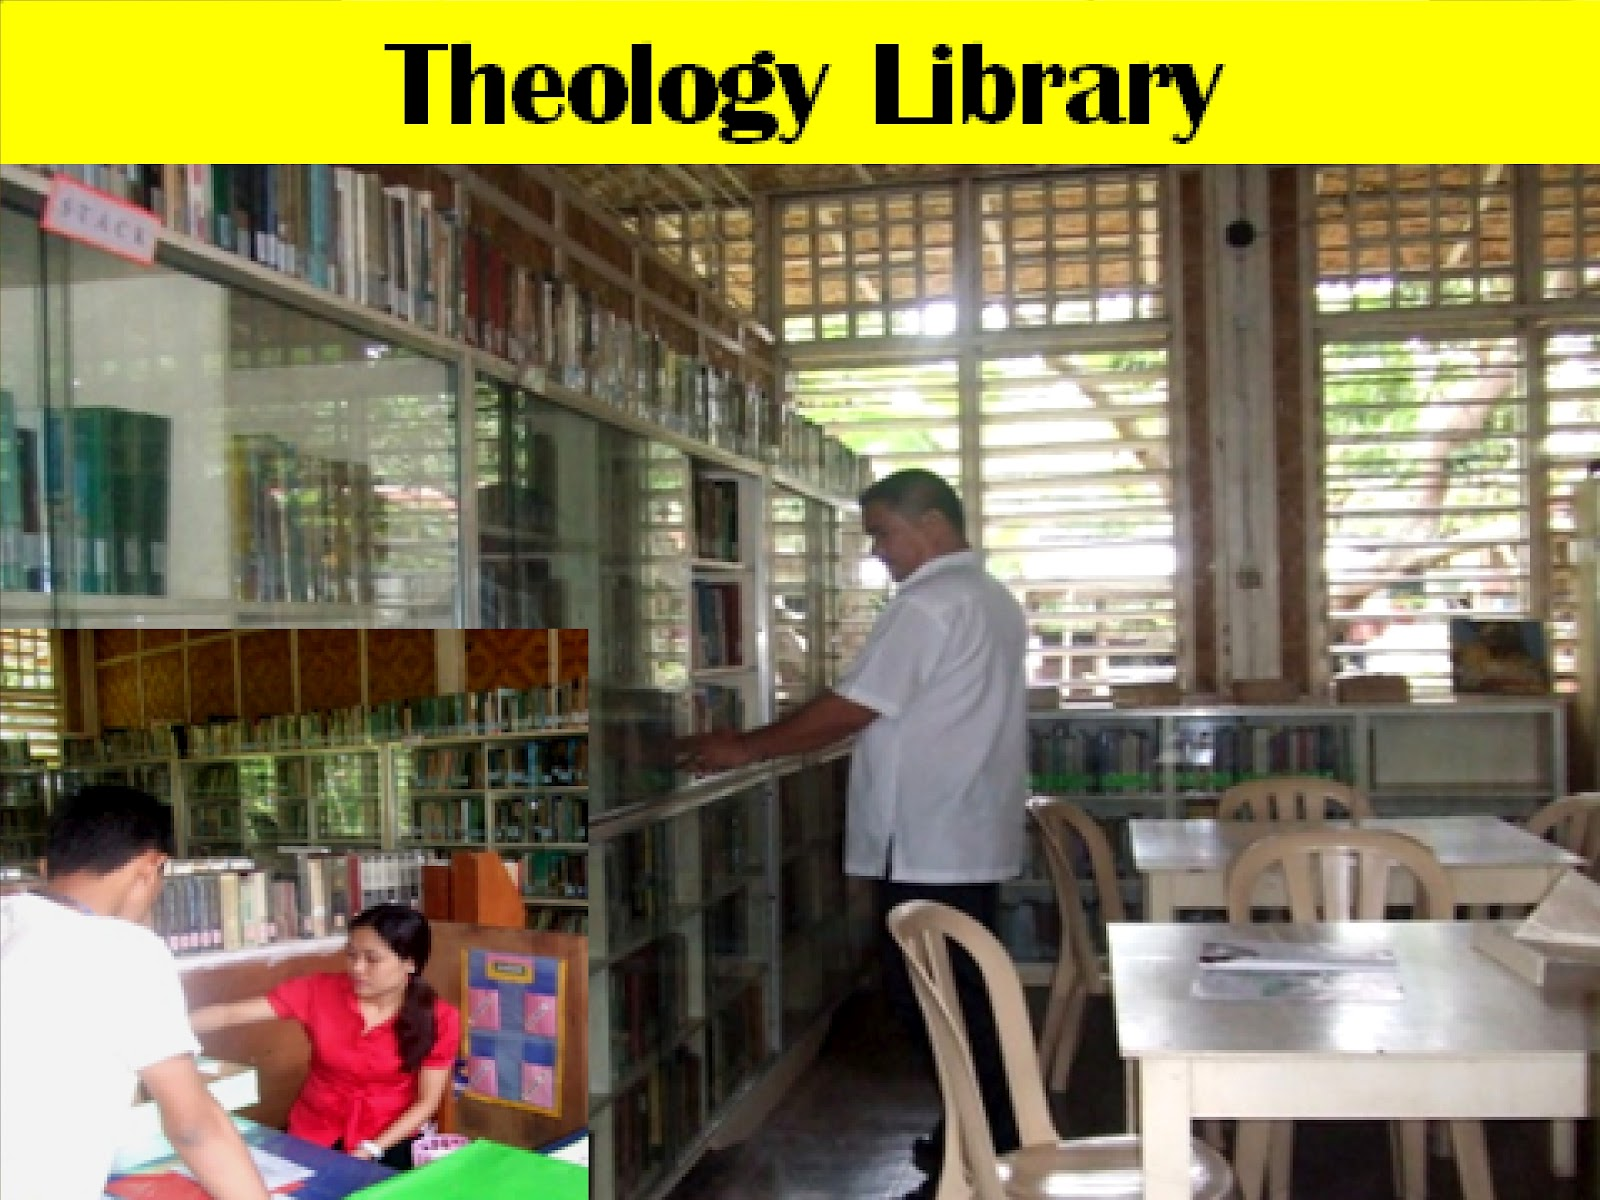 College Of Theology Library